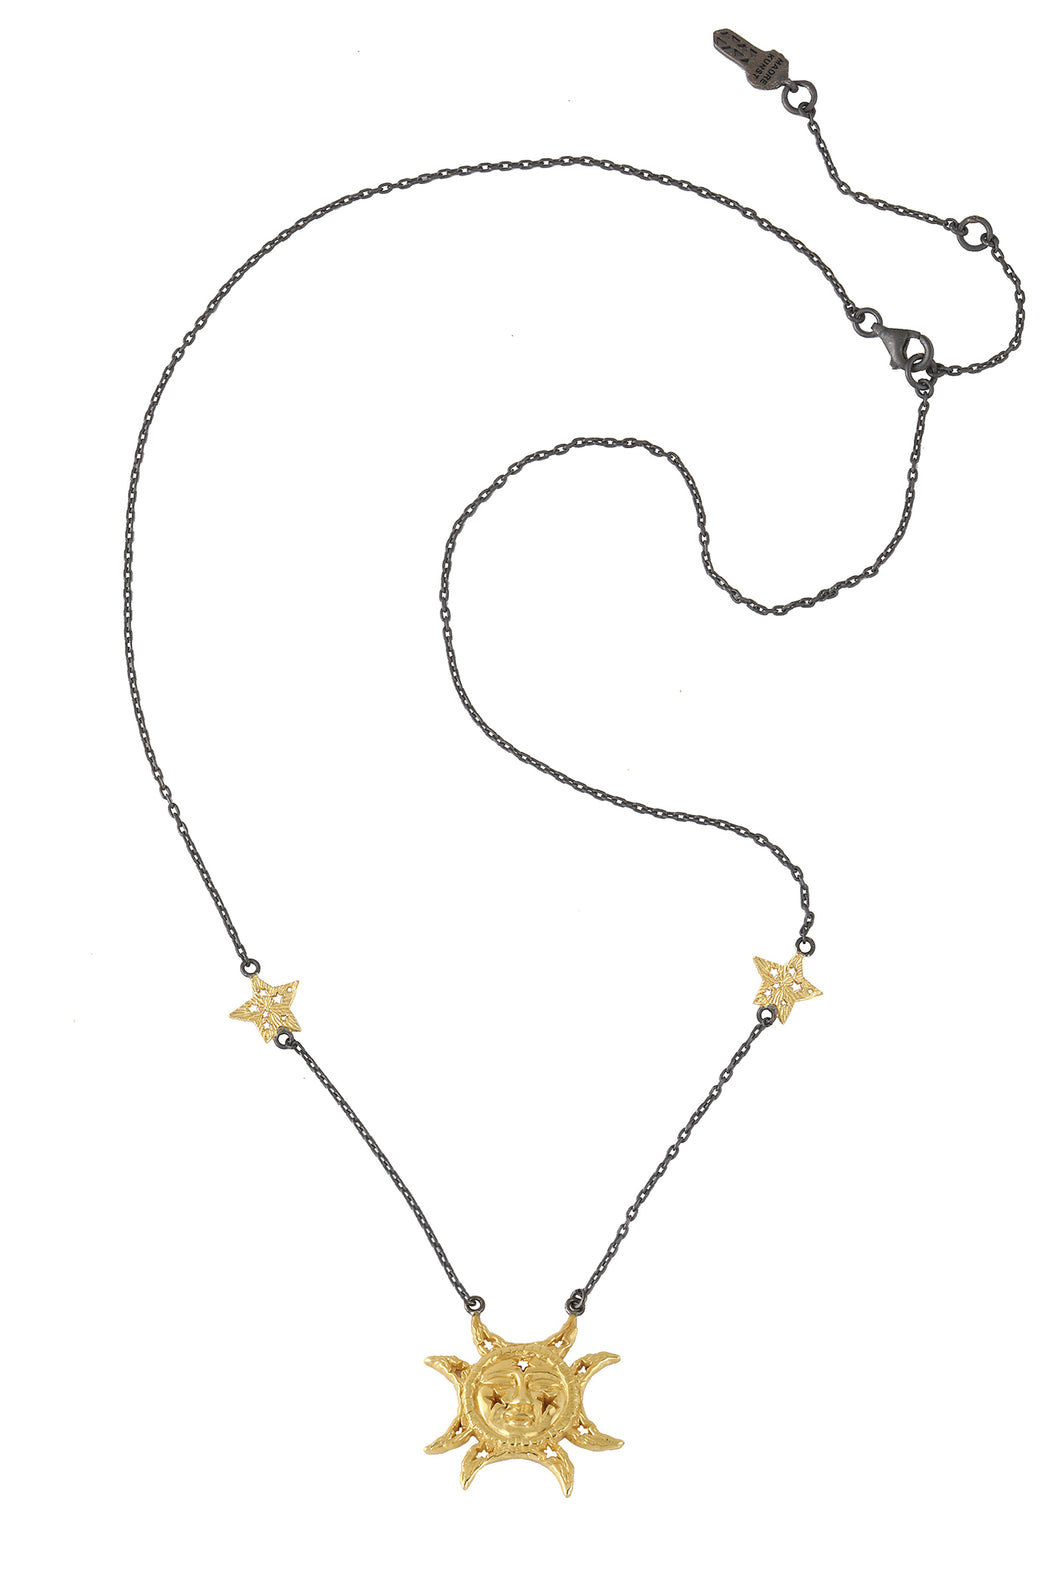 Magic moon face talisman necklace with two stars on the chain. Silver, gold plated and oxide